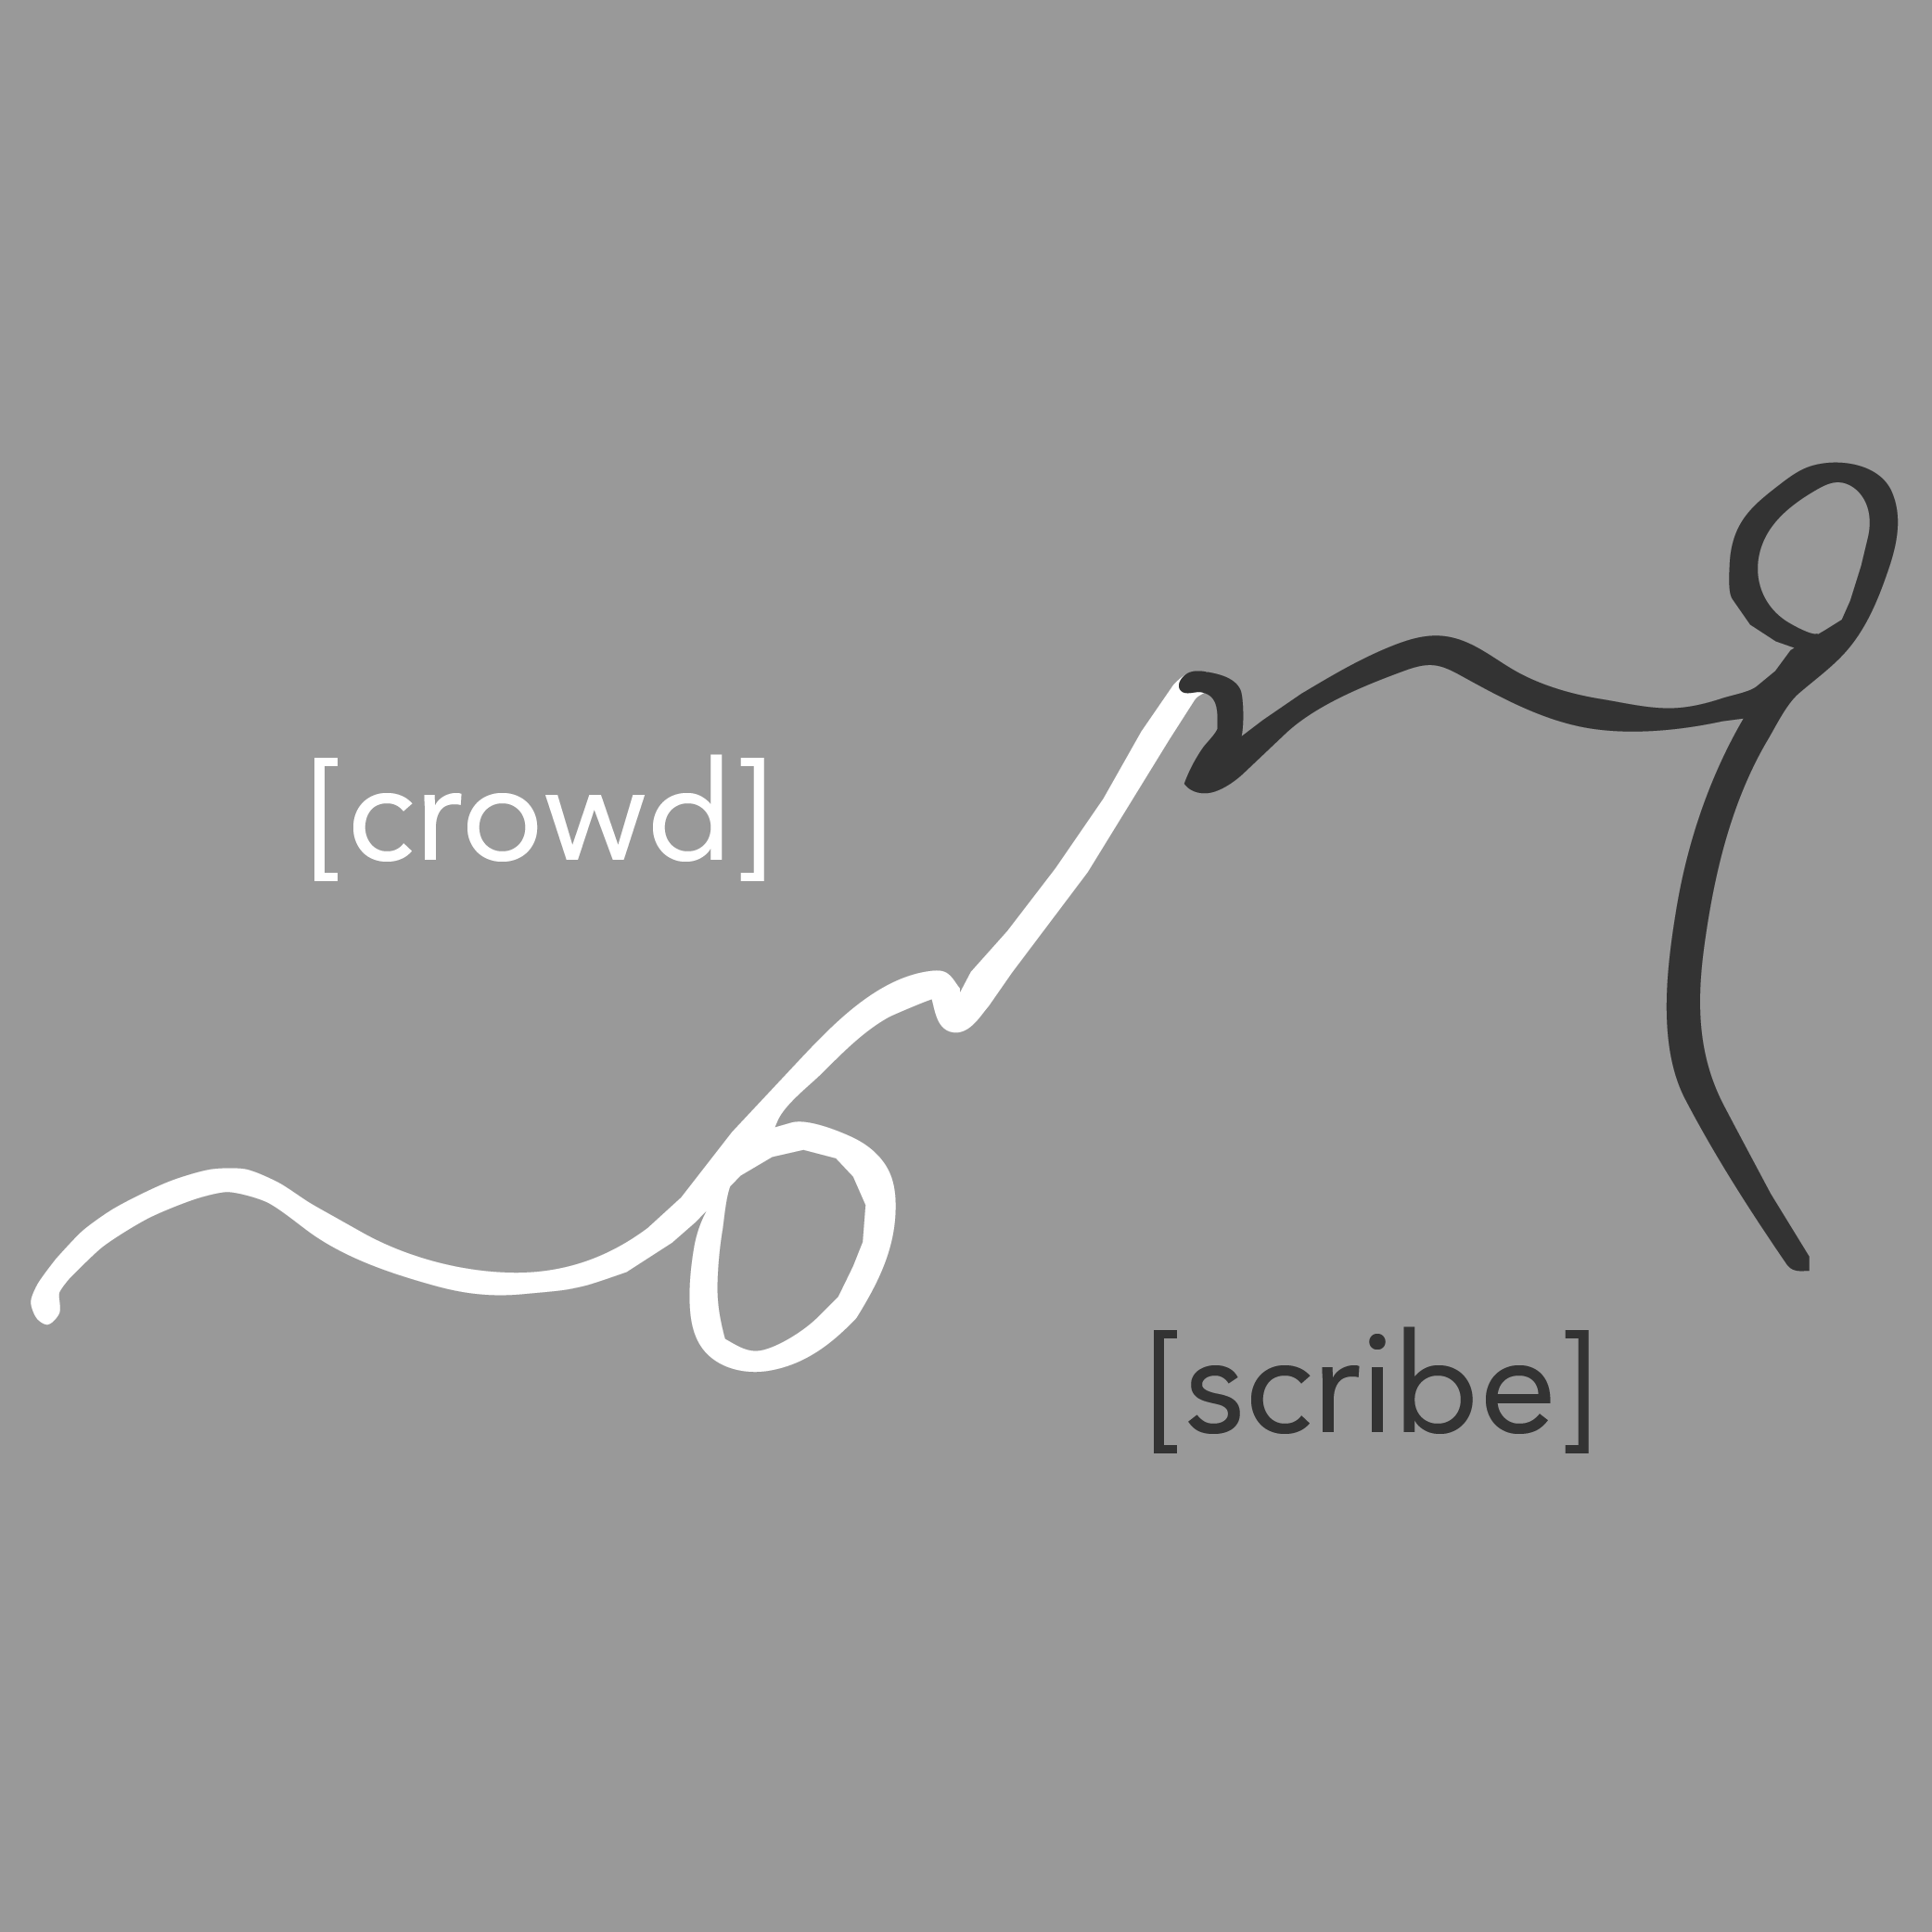 logo of crowd and scribe as written in shorthand